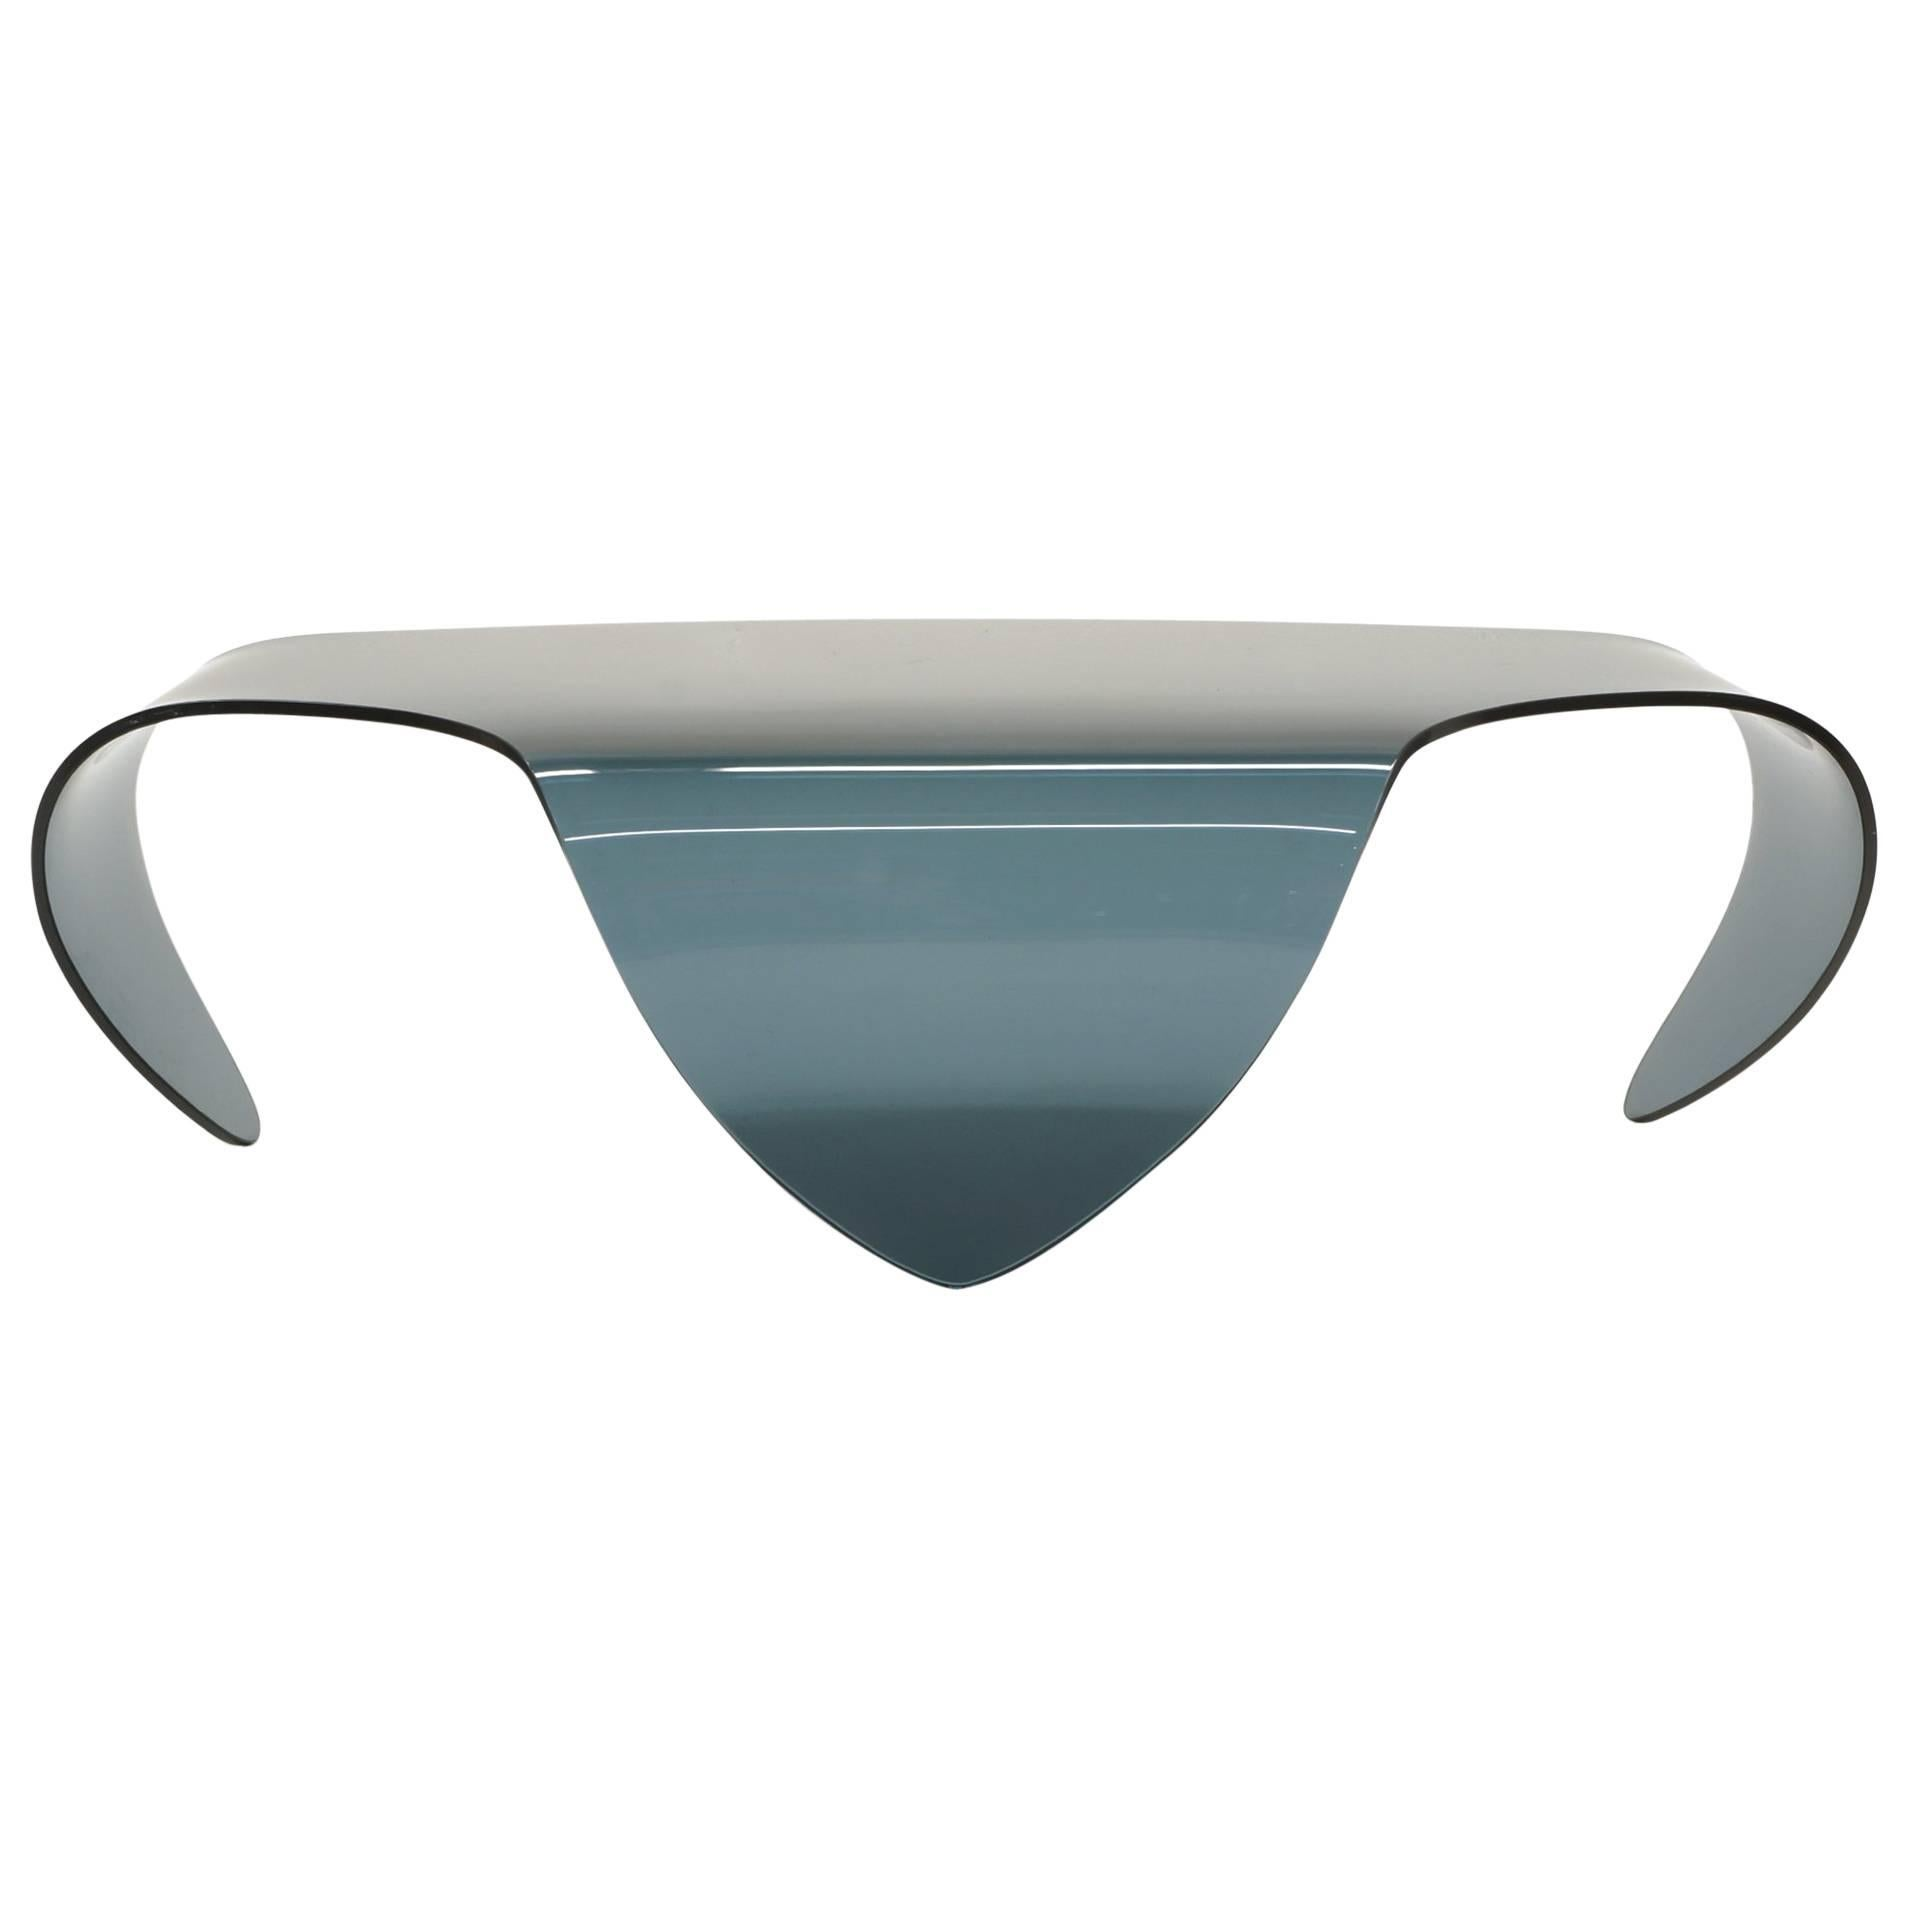 Glass form furniture Sets All Glass Coffee Table Biomorphic Sculptural Bluegray Glass Form For Sale Pepperfry All Glass Coffee Table Biomorphic Sculptural Bluegray Glass Form